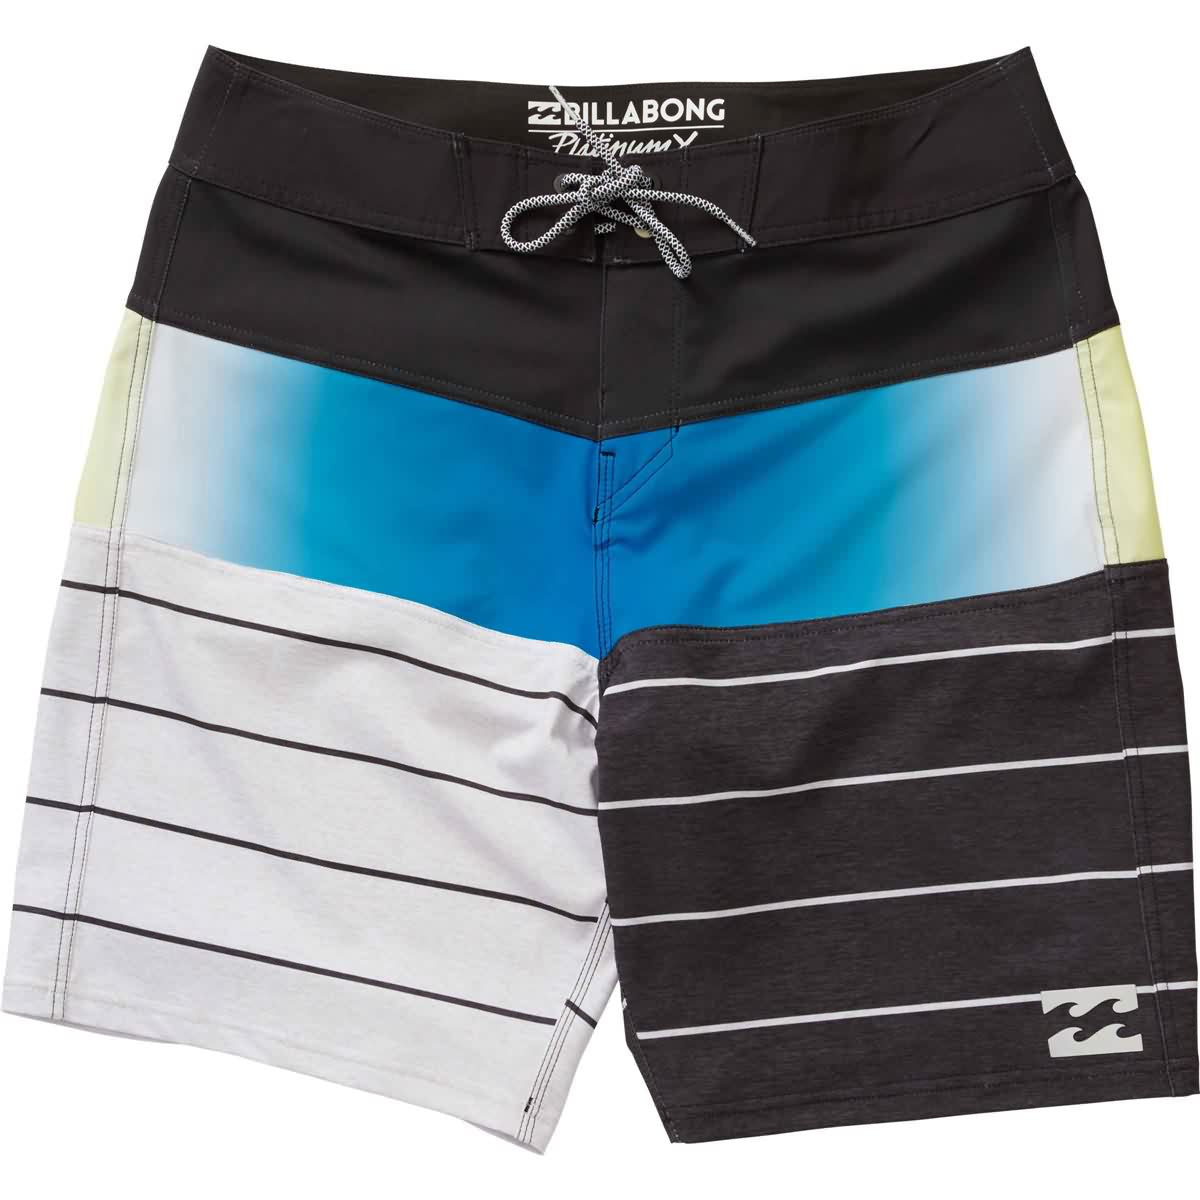 Billabong Tribong X Men's Boardshort Shorts-M104GTRX